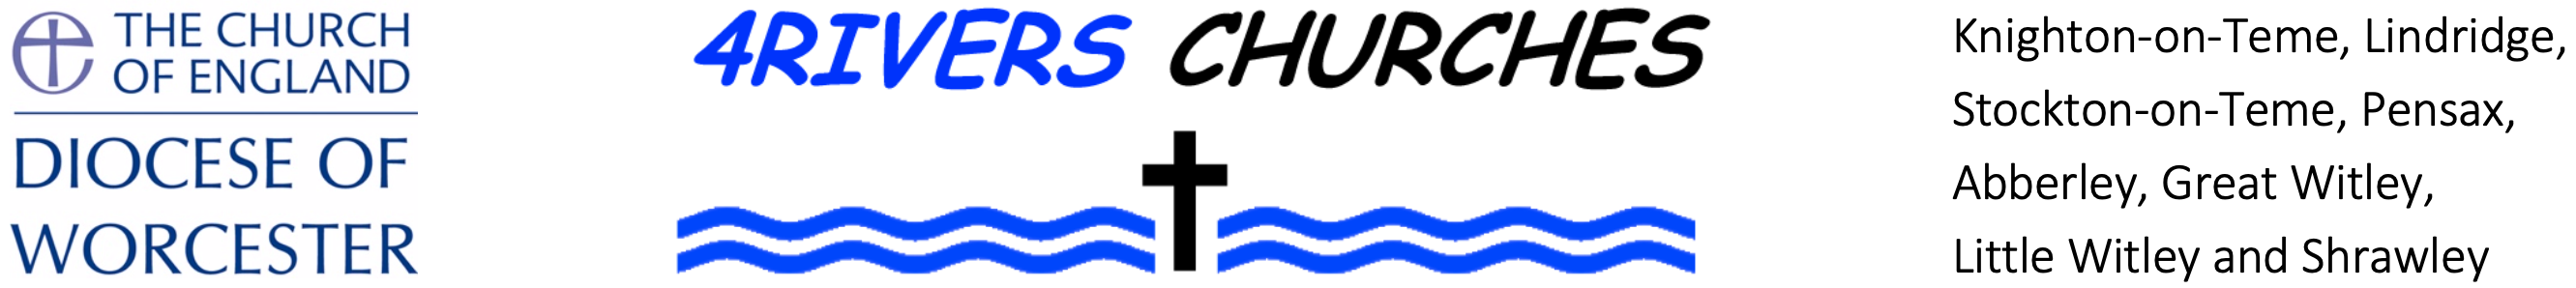 4RIVERS CHURCHES